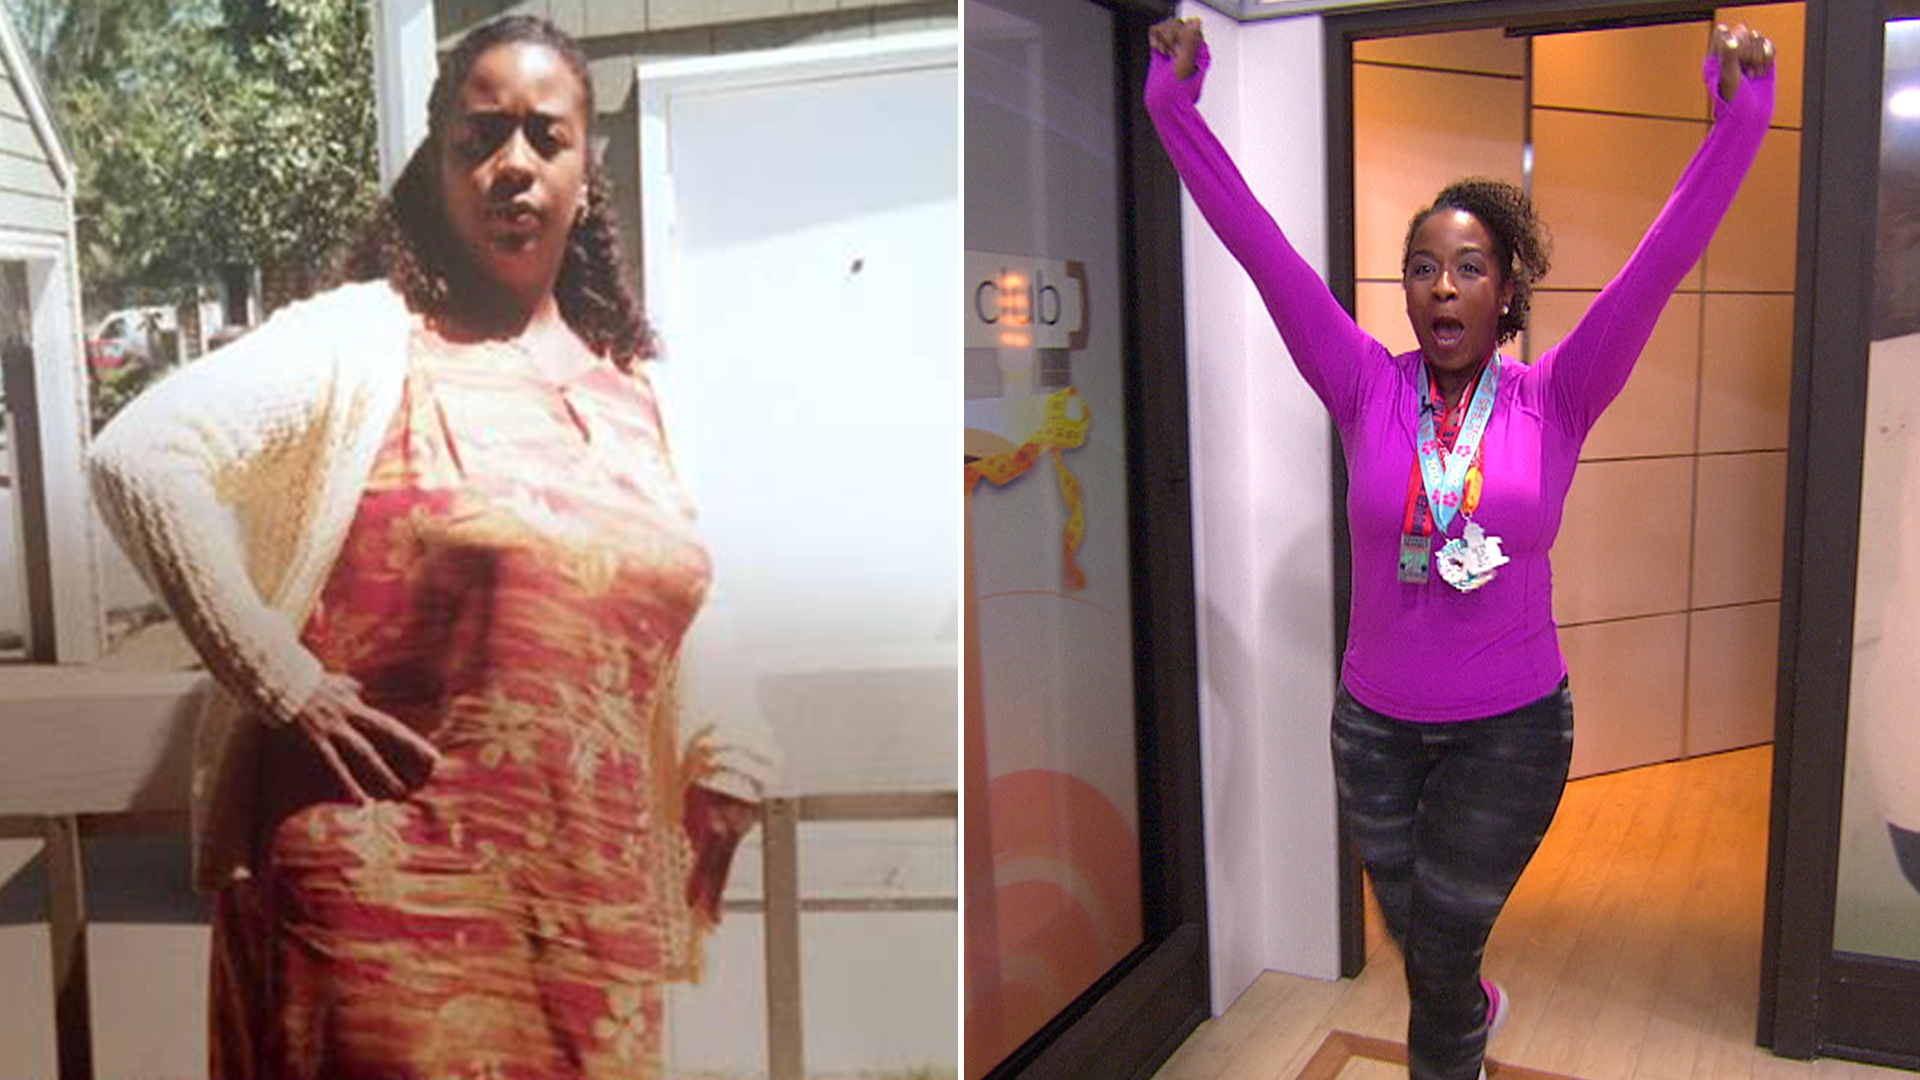 How Dwayne Johnson helped this woman drop 115 pounds